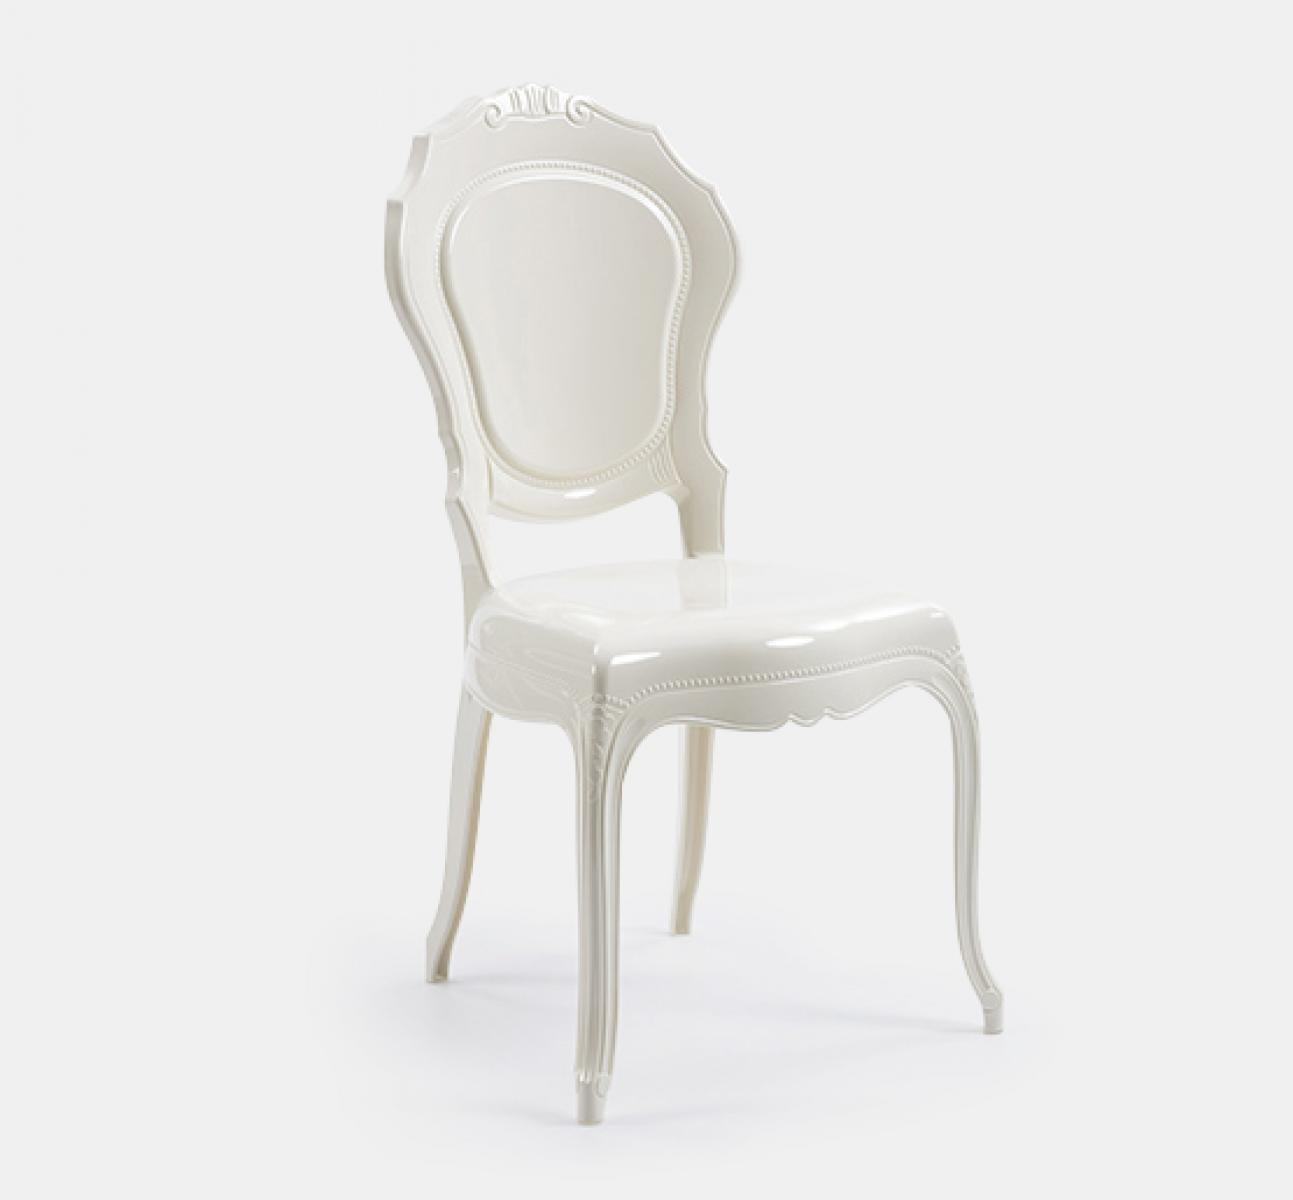 Clic Outdoor Chair - White